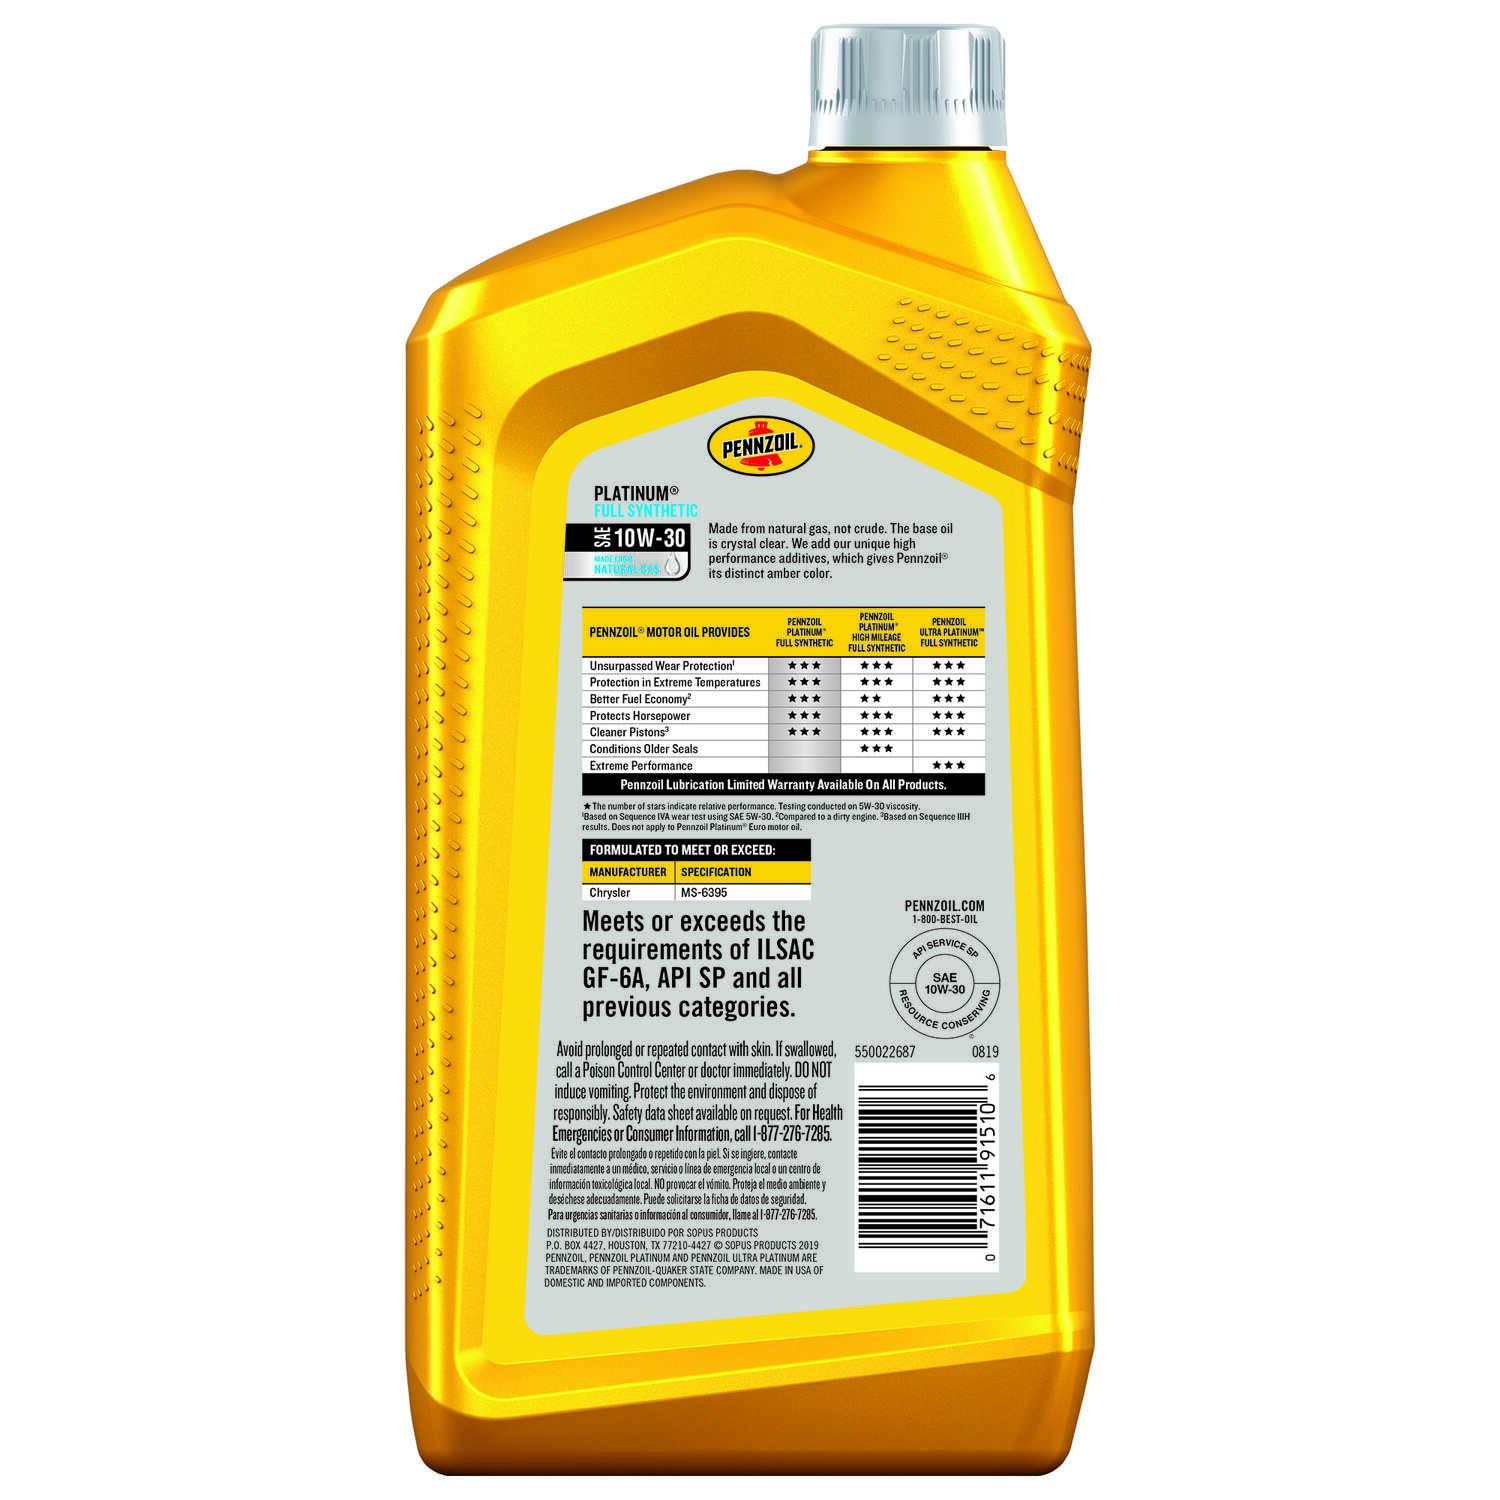 PENNZOIL  Platinum  10W-30  4 Cycle Engine  Synthetic  Motor Oil  1 qt.